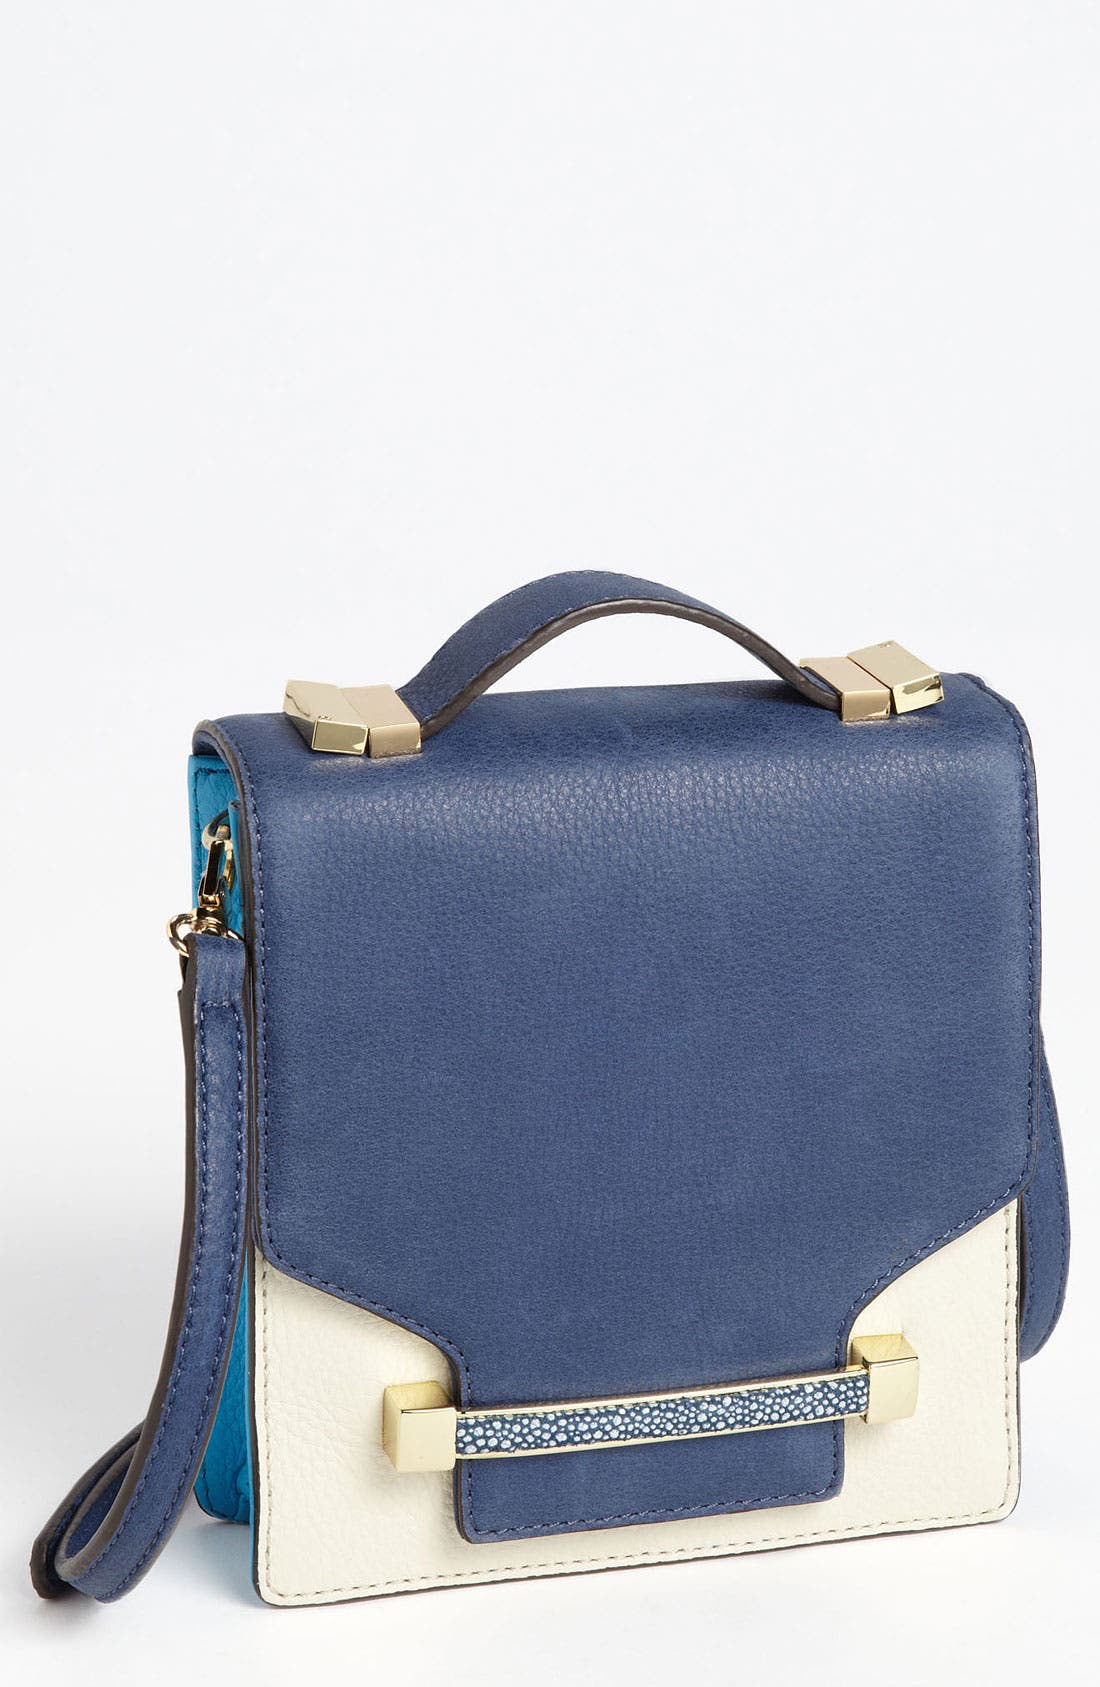 Alternate Image 1 Selected - Vince Camuto 'Julia' Crossbody Bag